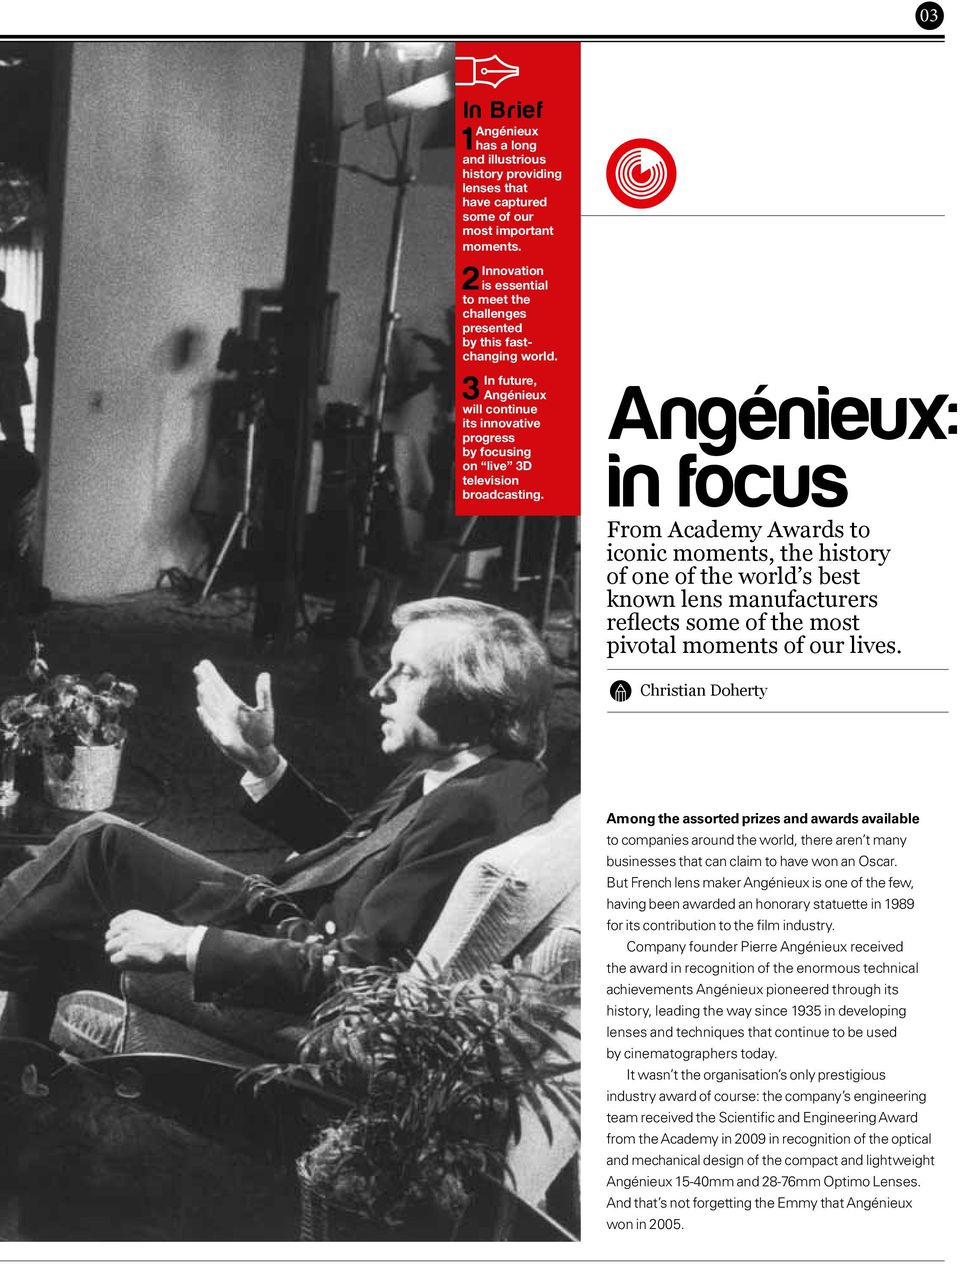 Angénieux: in focus From Academy Awards to iconic moments, the history of one of the world s best known lens manufacturers reflects some of the most pivotal moments of our lives.